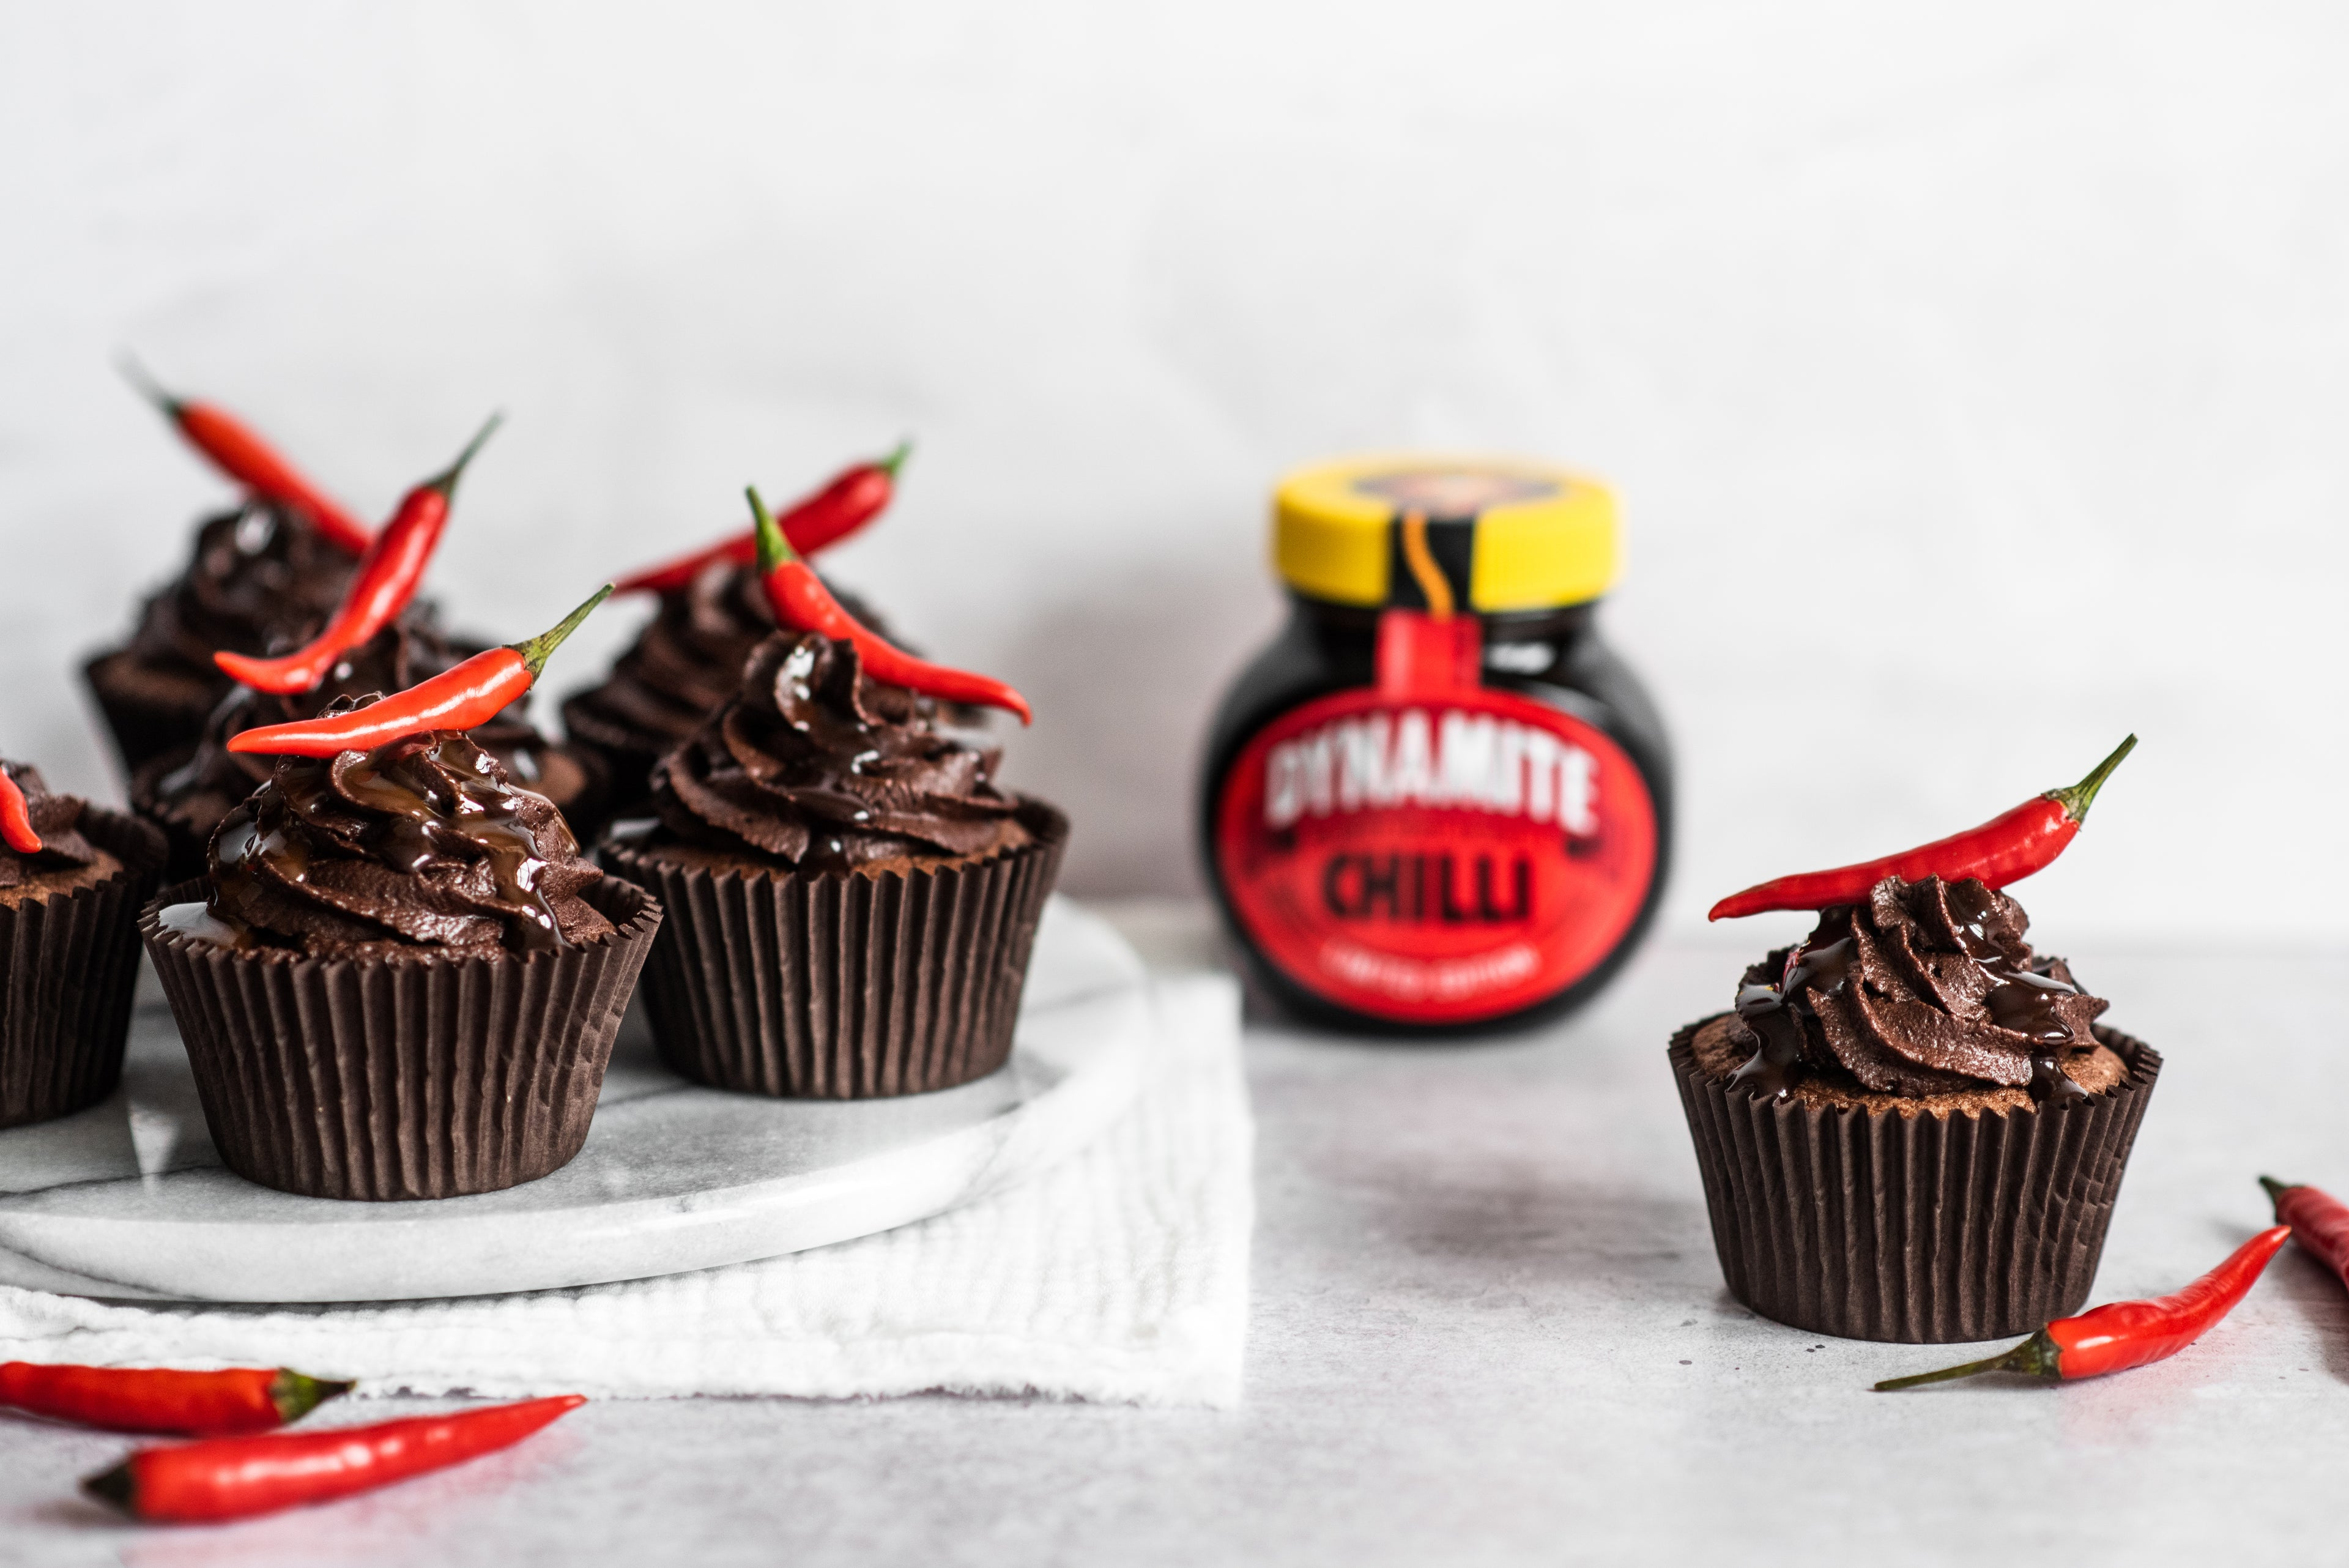 Chilli Chocolate Cupcakes with a chilli on top